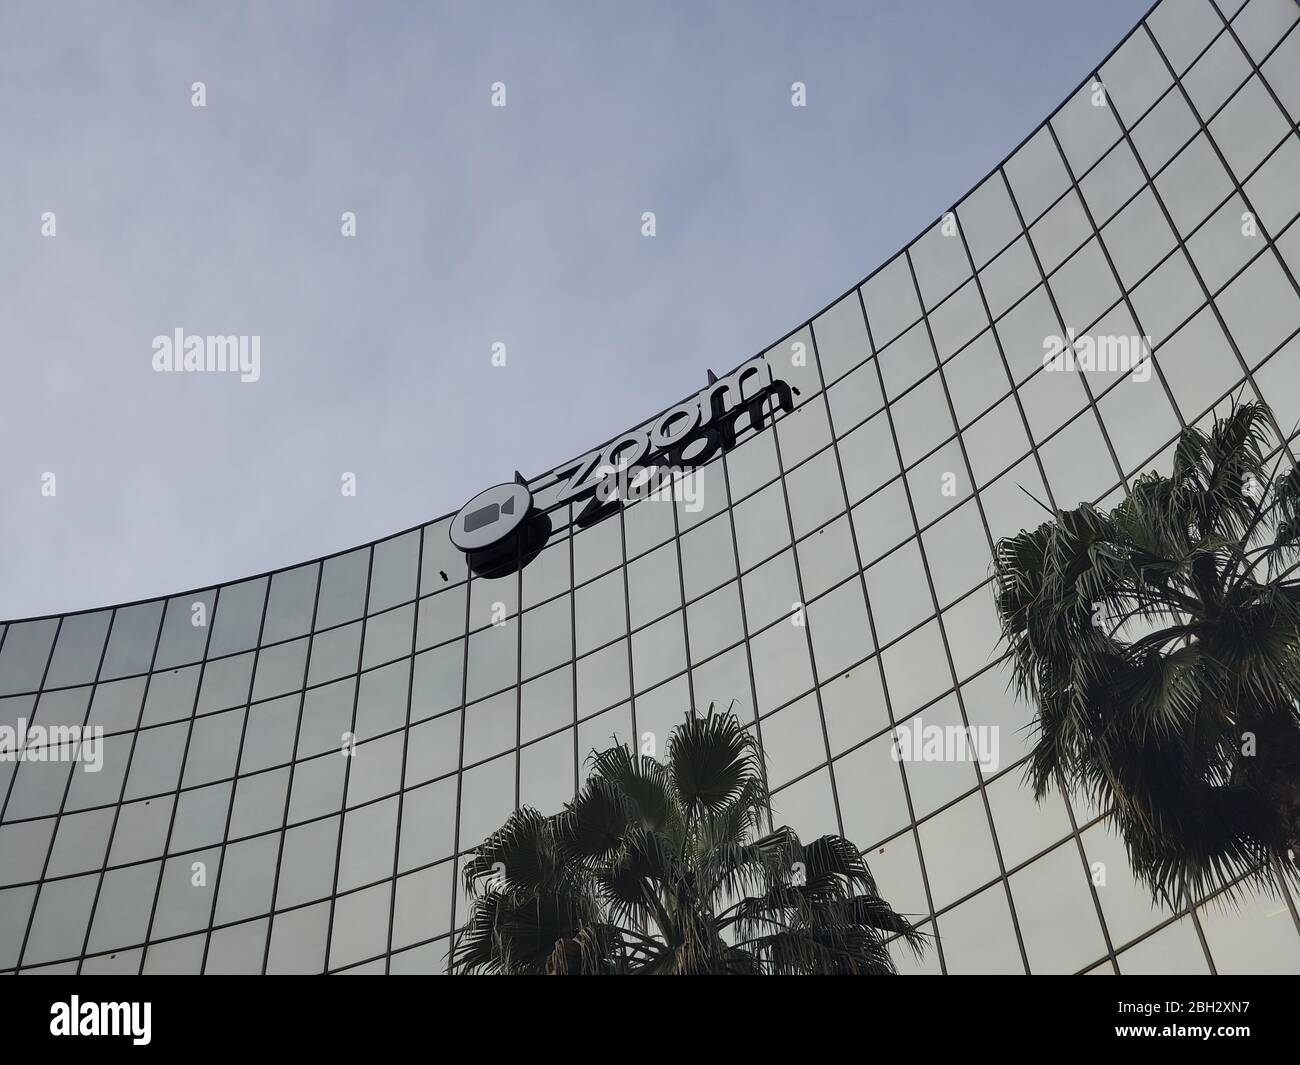 Facade with sign at headquarters of videoconferencing, remote work, and webinar technology company Zoom (ZM) in the Silicon Valley, San Jose, California, March 28, 2020. () Stock Photo